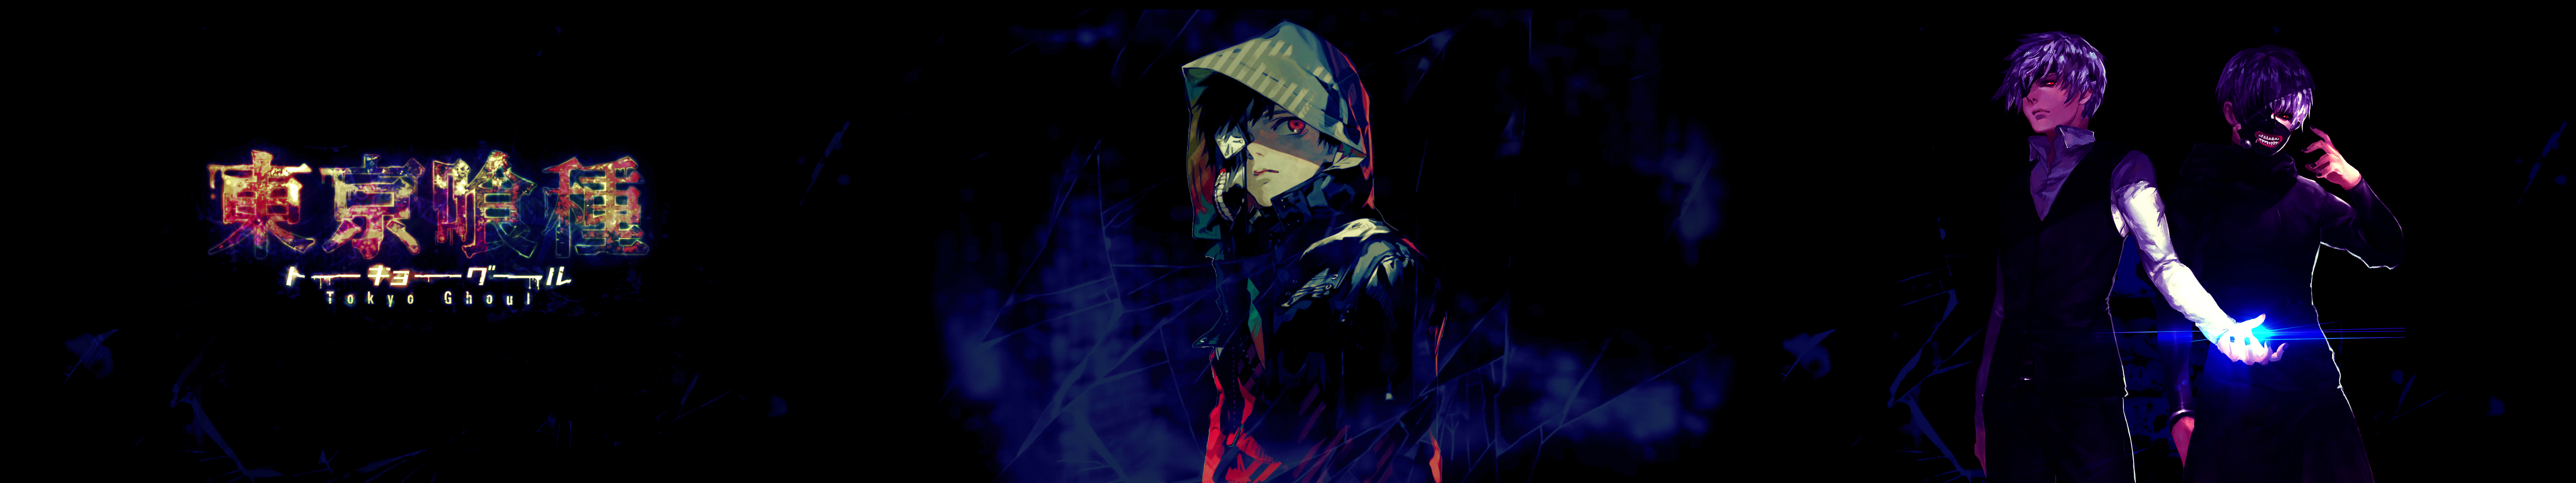 A-Tokyo-Ghoul-I-made-a-while-back-for-my-triple-screen-set-up-1080-Res-wallpaper-wpc5801894